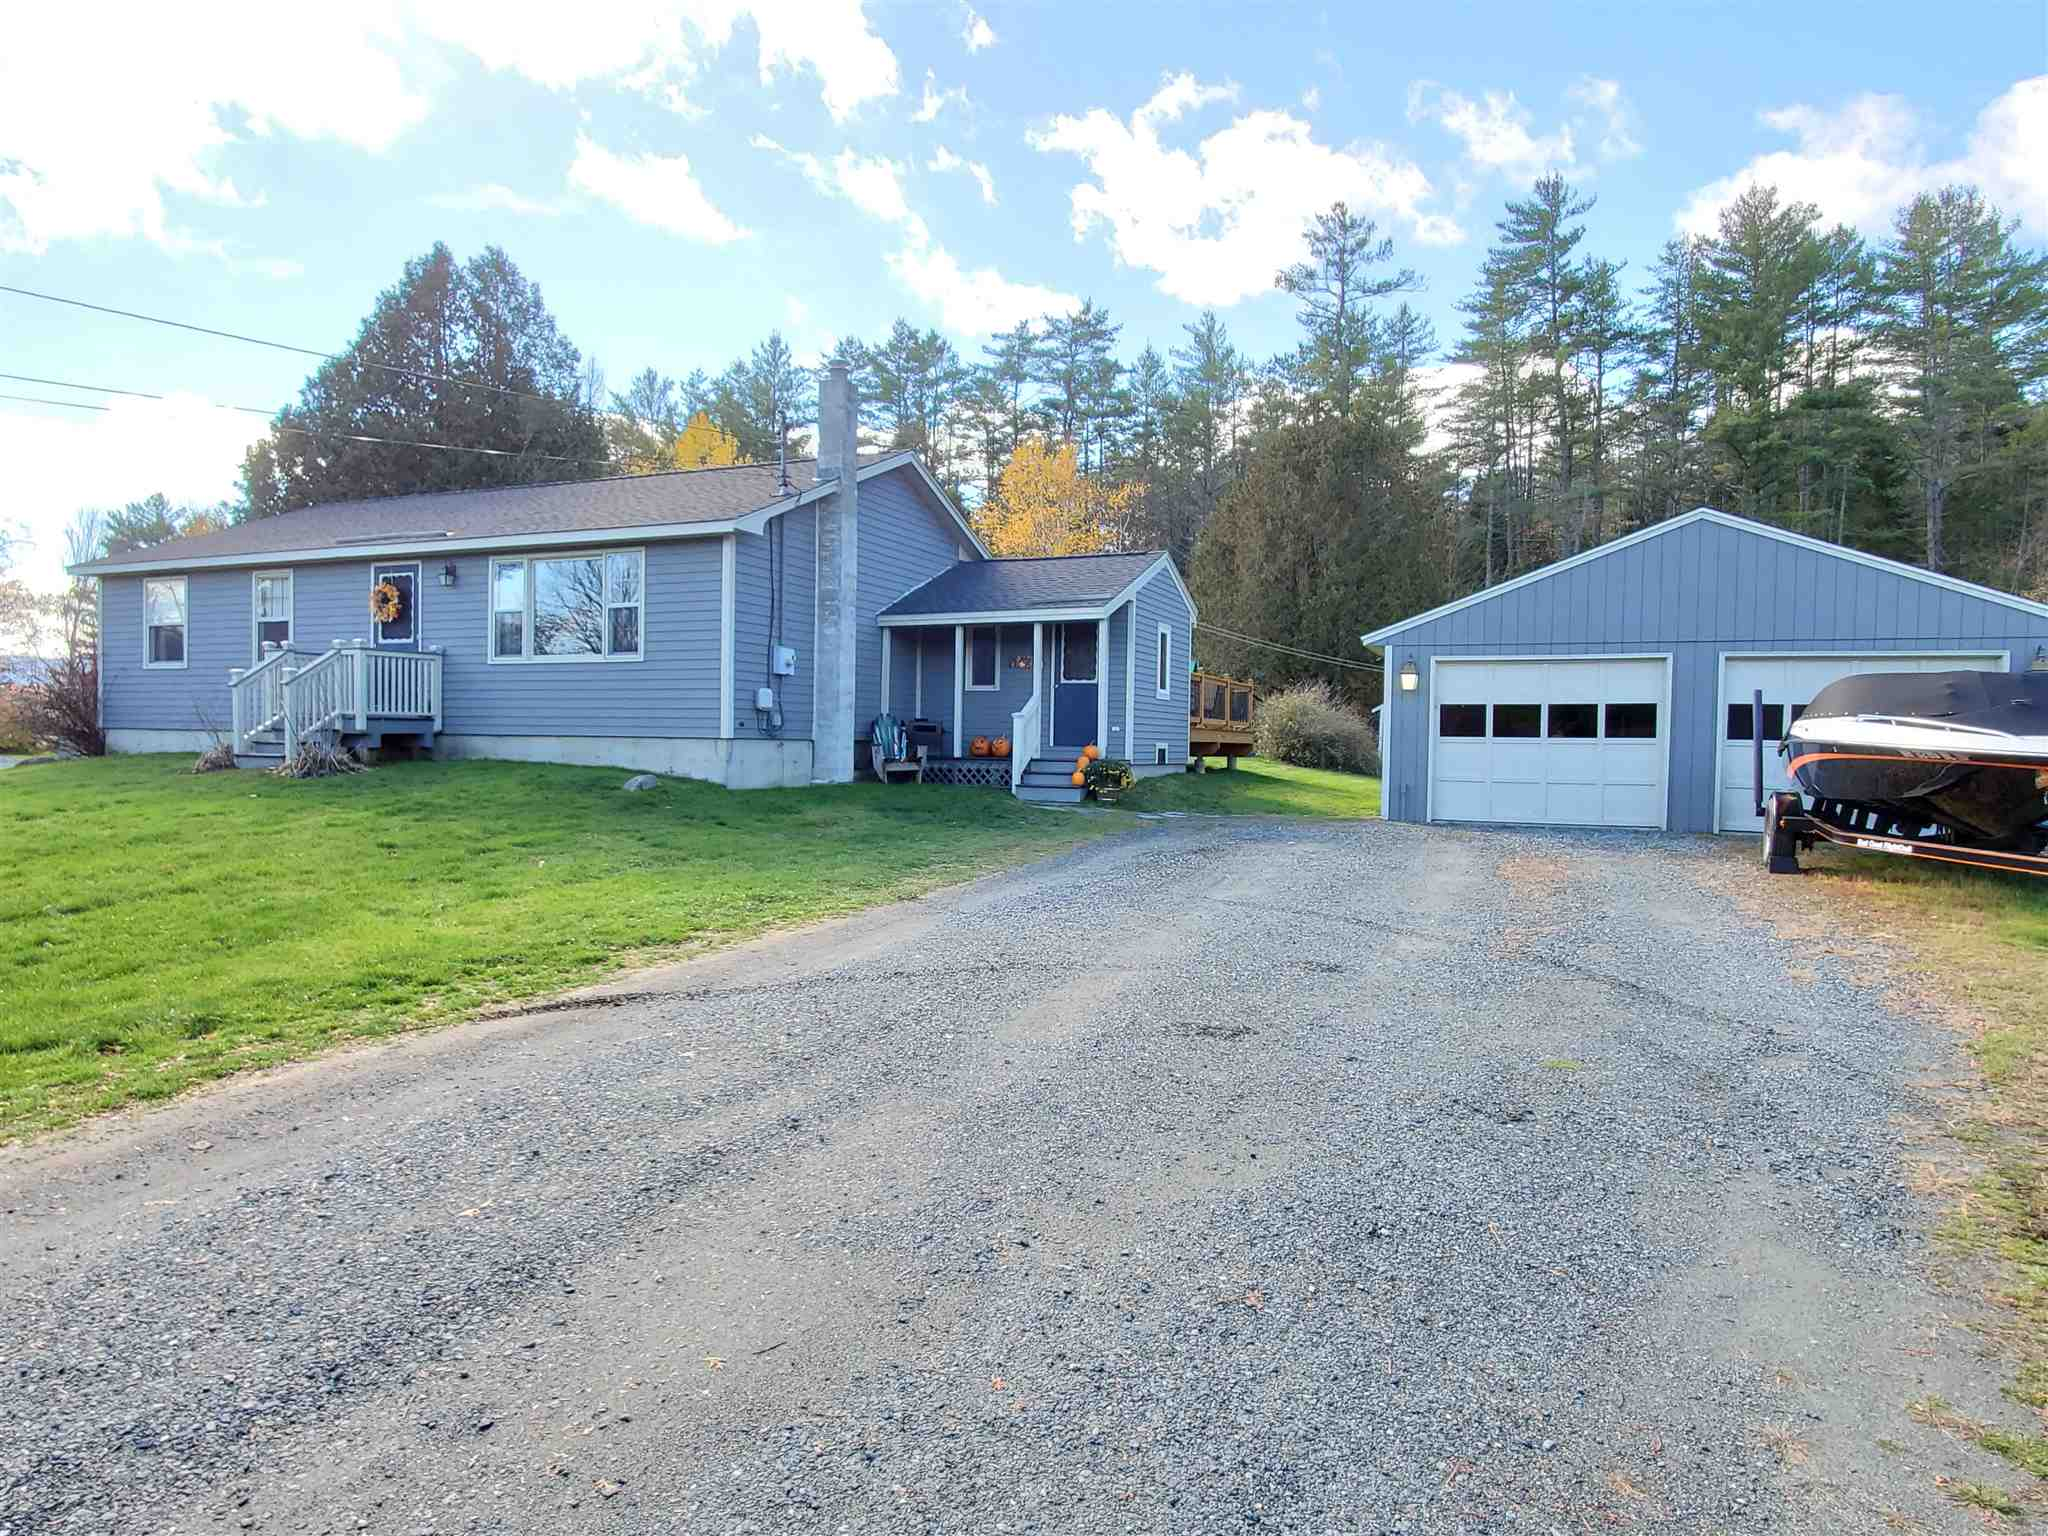 MLS 4832551: 73 Maple Street, Enfield NH